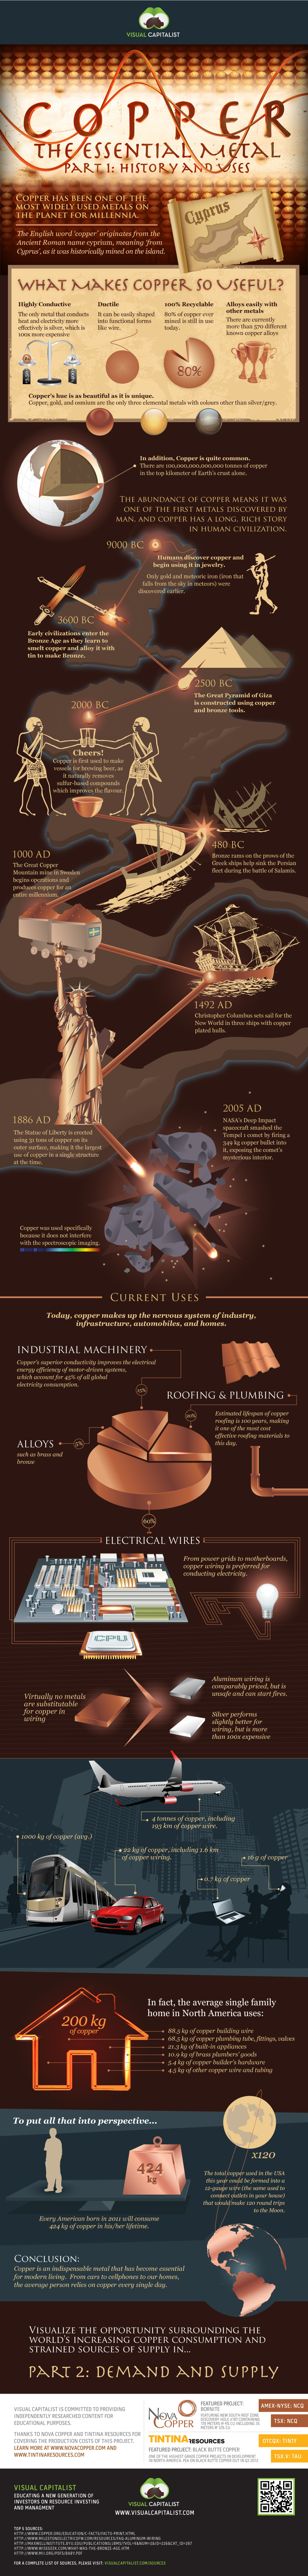 copper-infographic-part-1